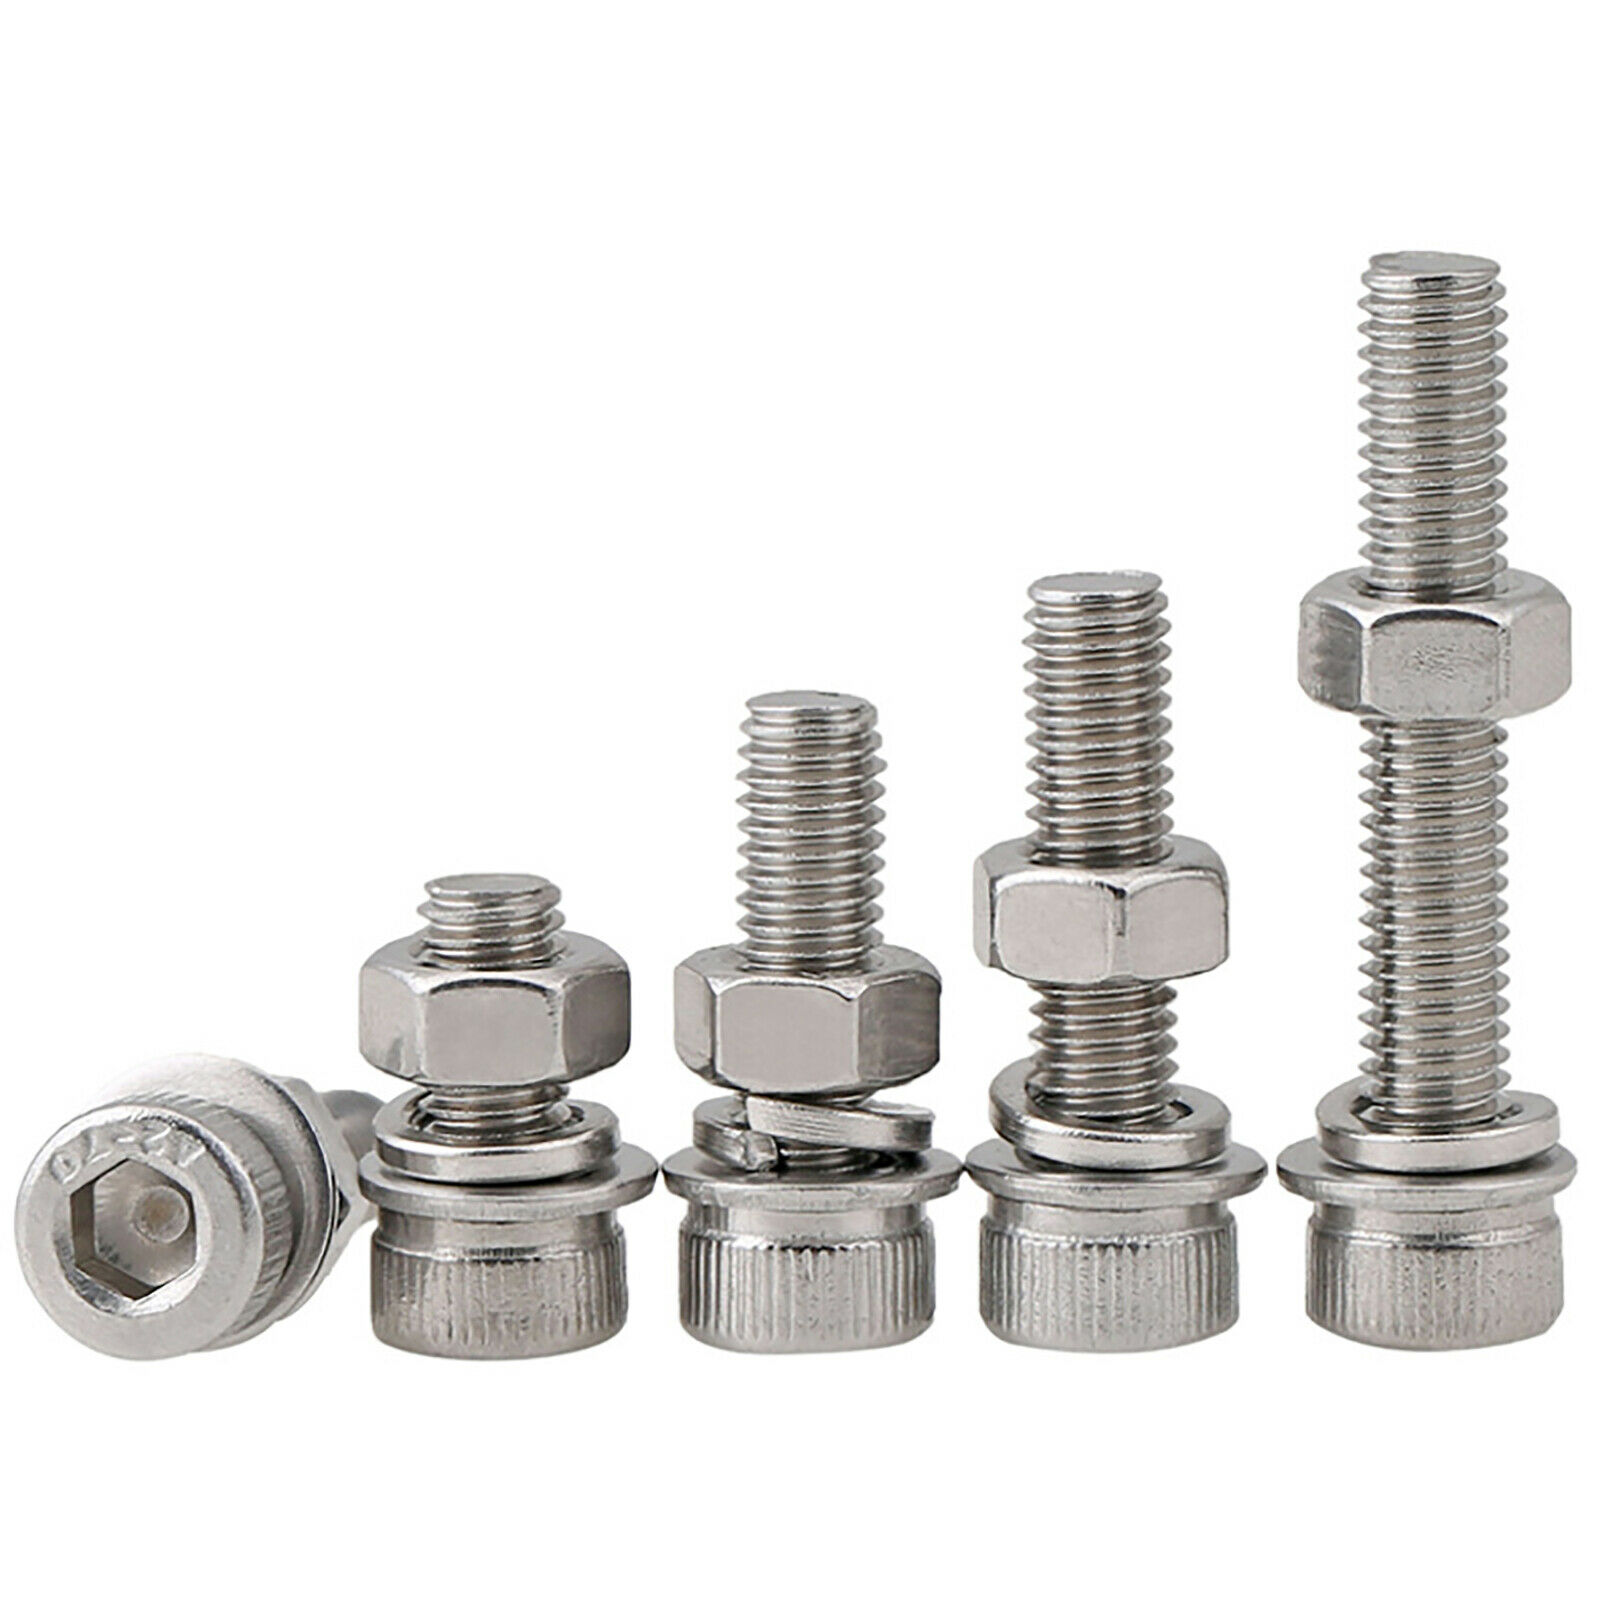 Stainless Steel Screws by Persberg Flat /& Lock Washers Kits 100 Hex Nuts+ 100 Flat /& Lock washers Nuts Machine Thread M4 Nuts washers Assortment kit, 18-8 110-120 Stainless Steel 304